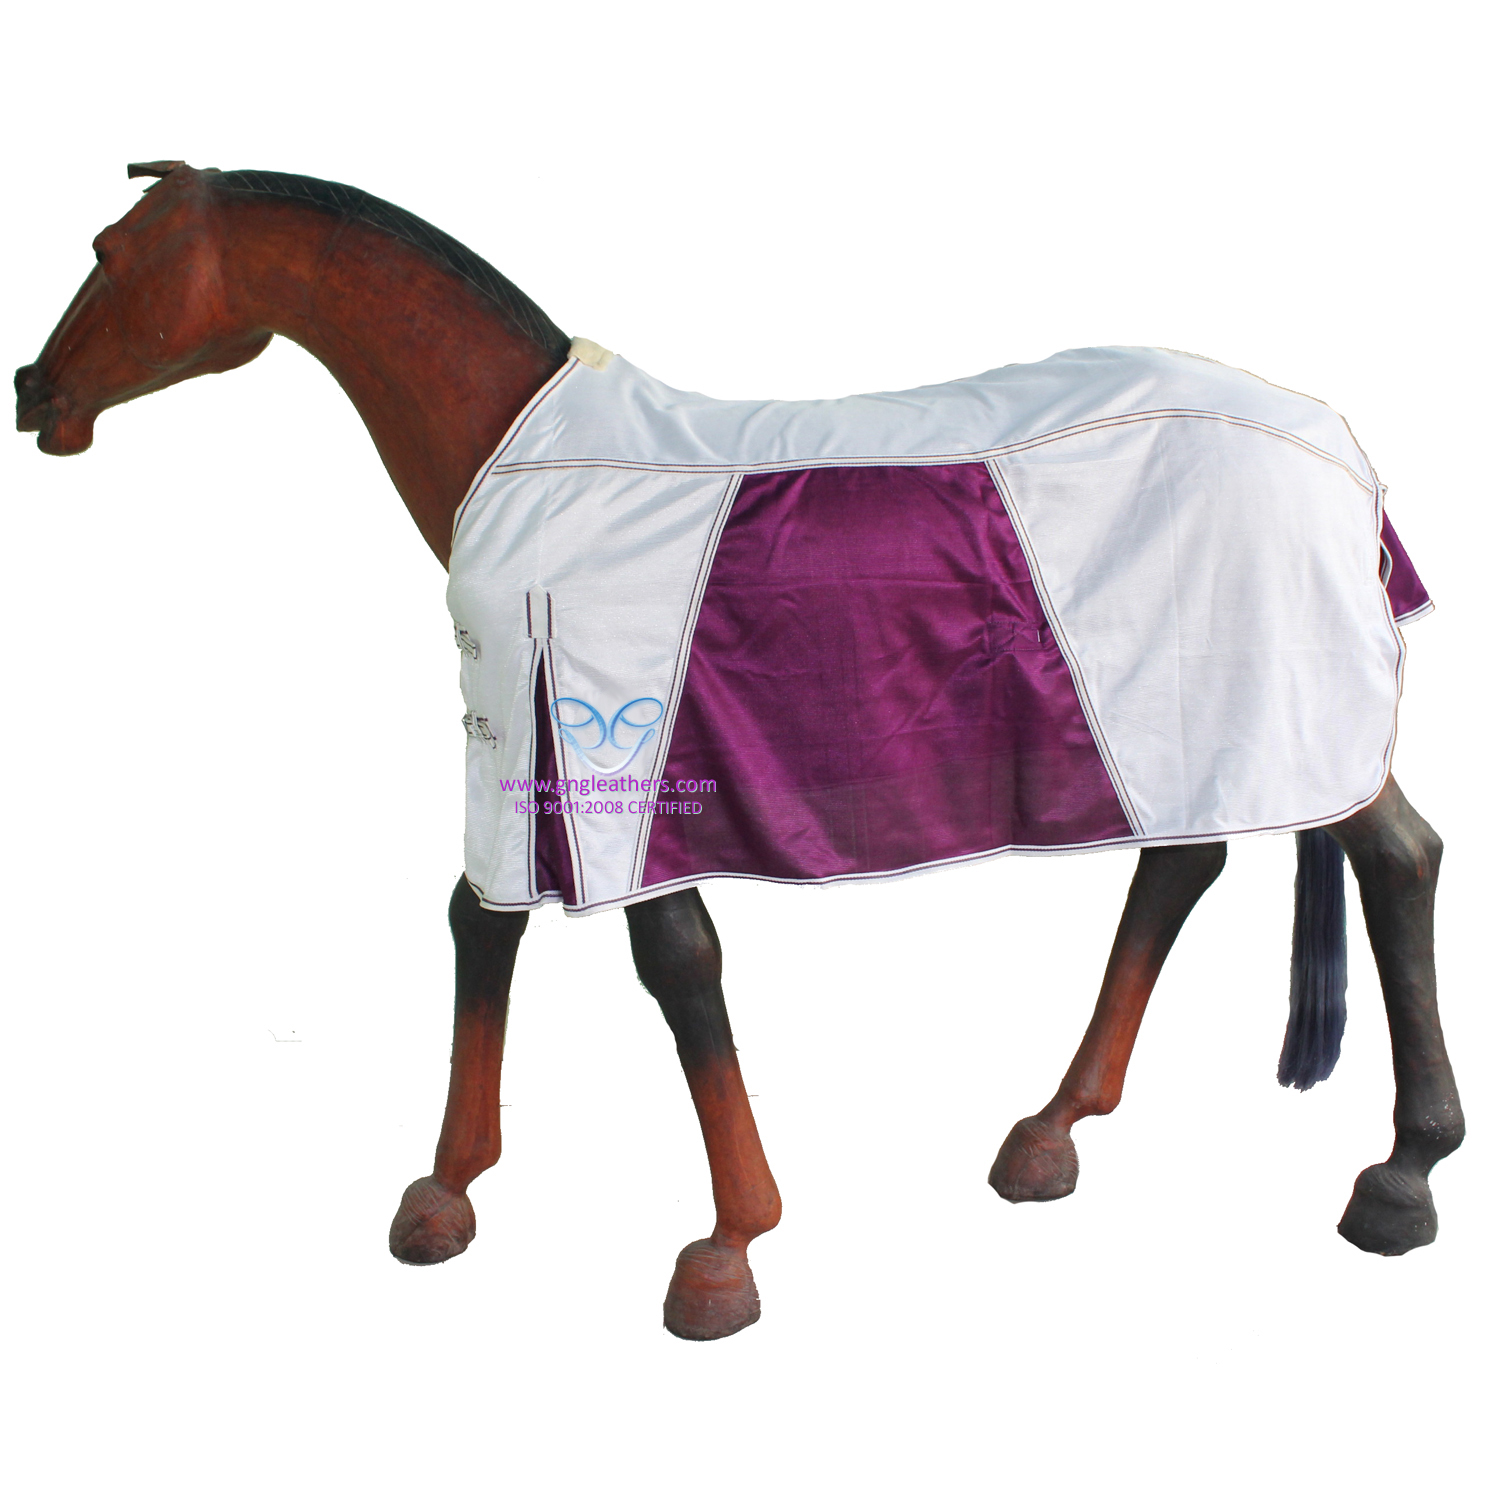 GNG-R4601 – Horse Fly Rug in Off White & Purple